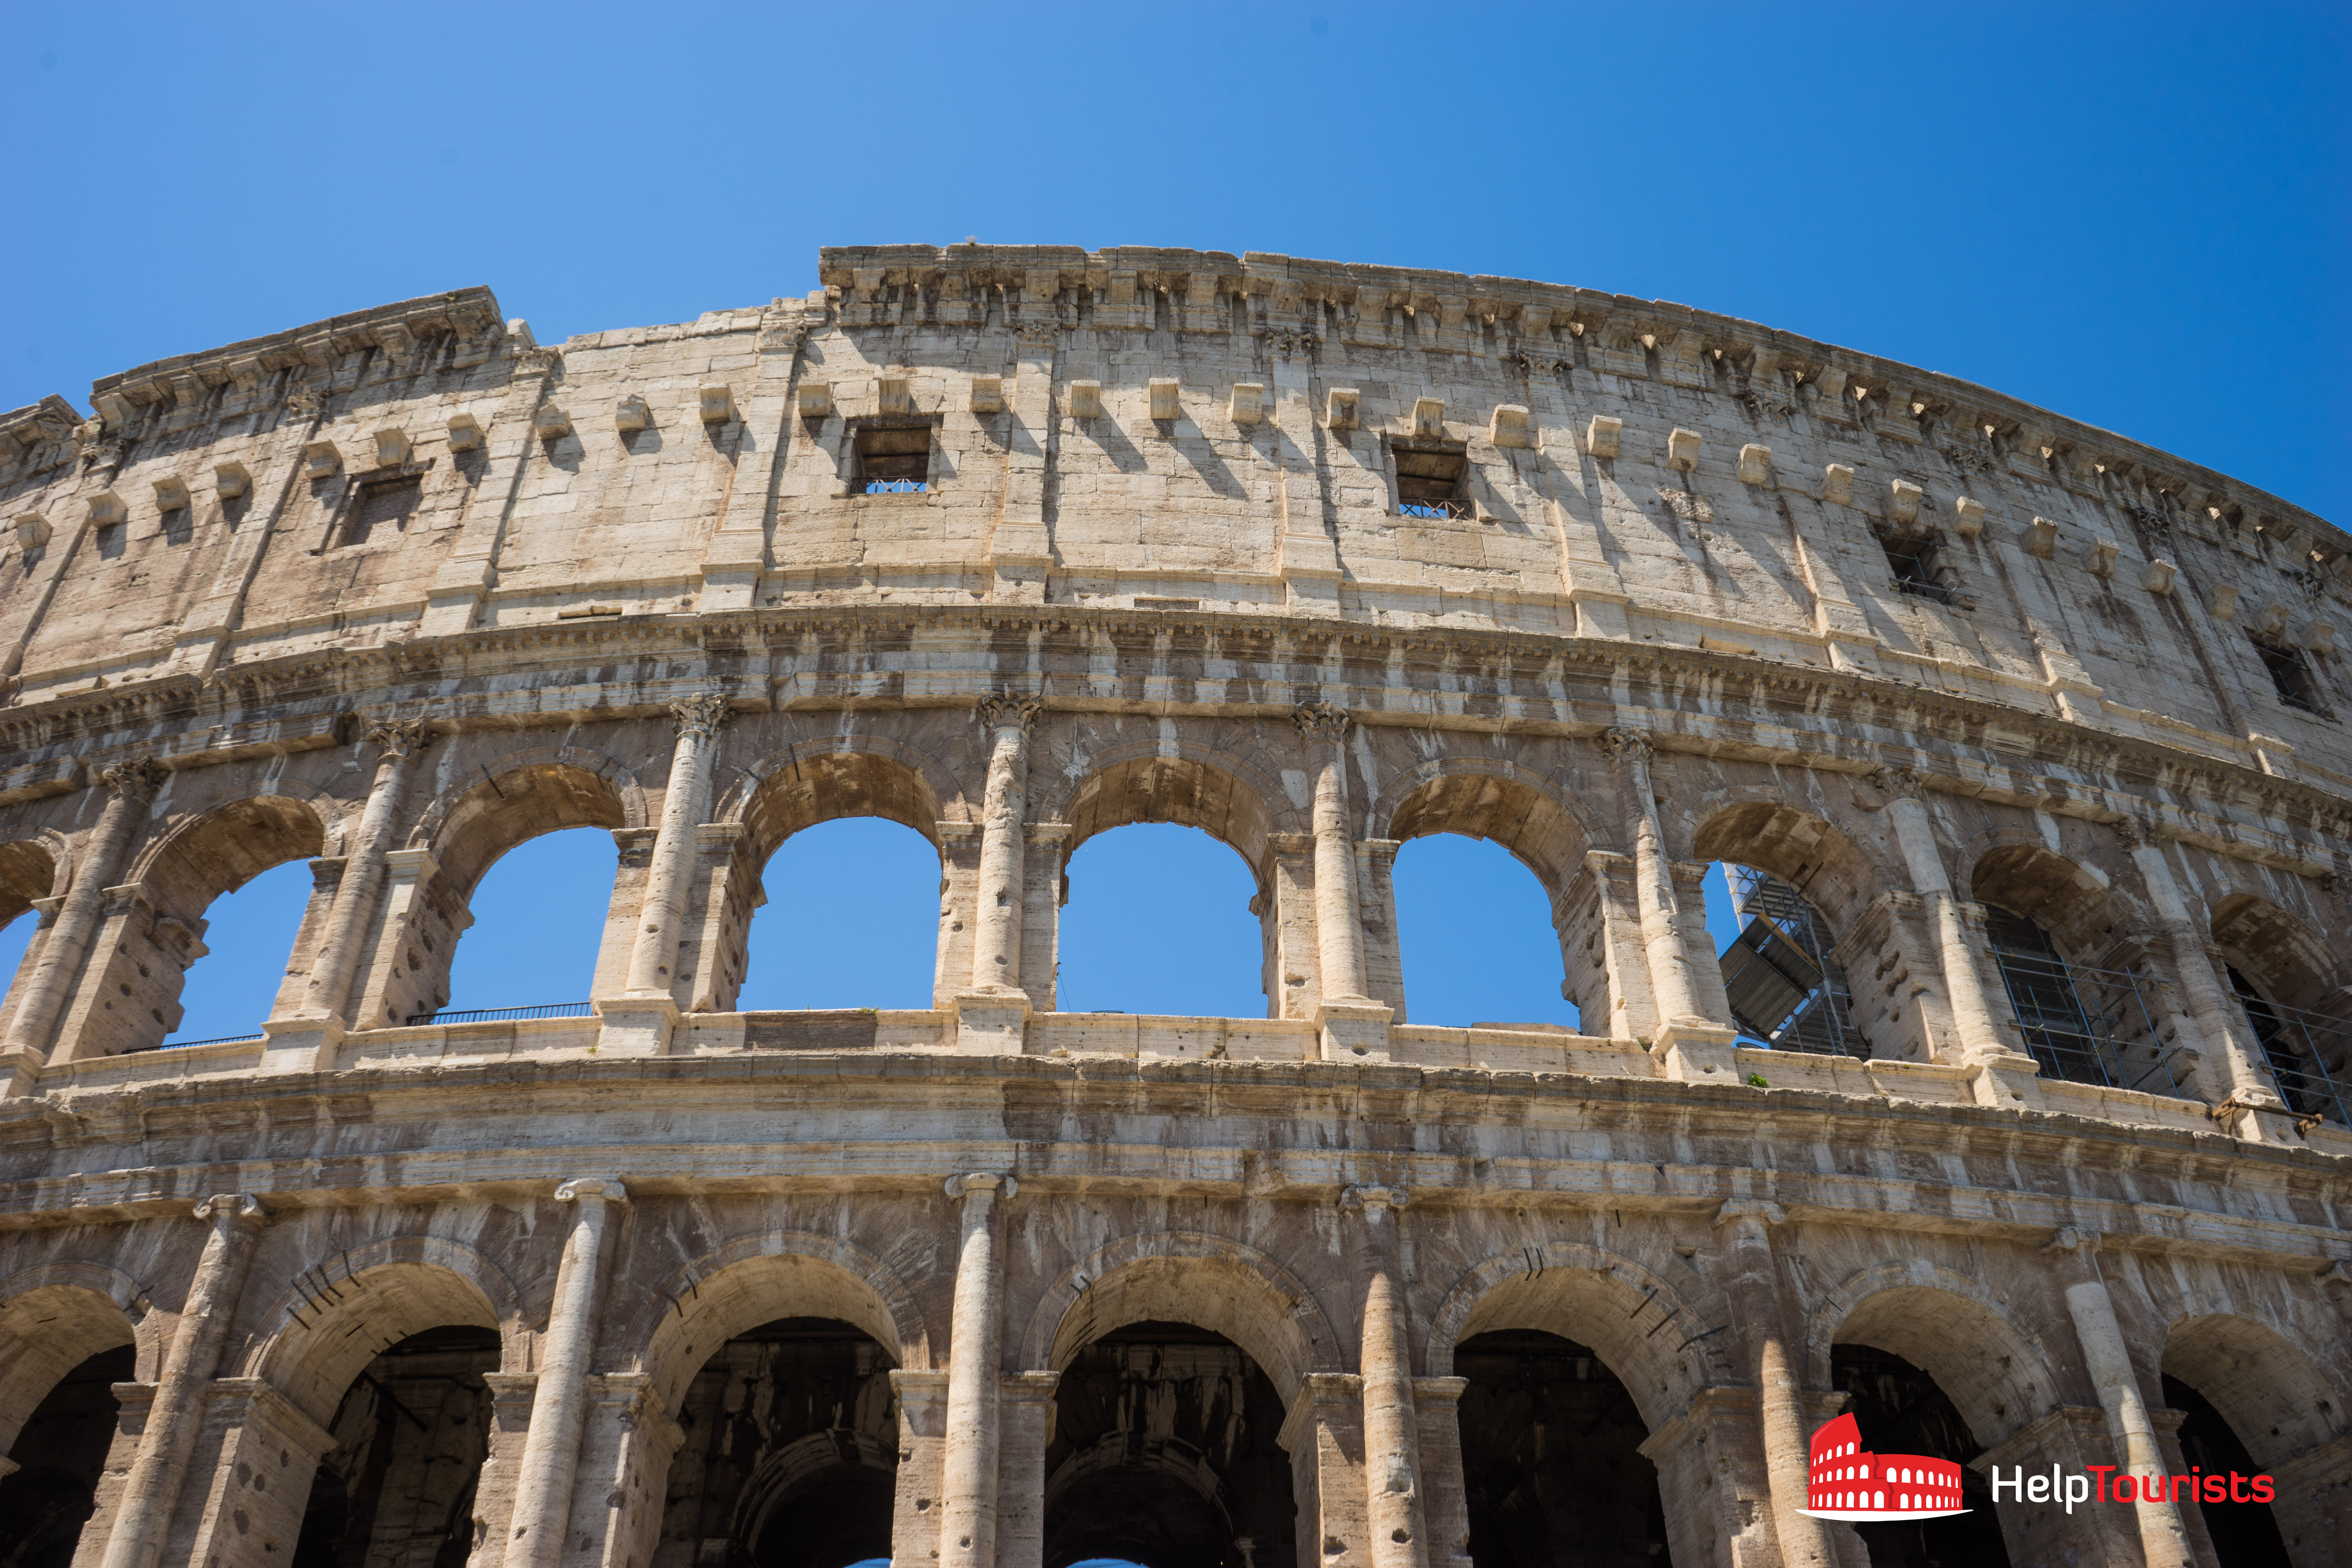 ROME_Colosseum-window